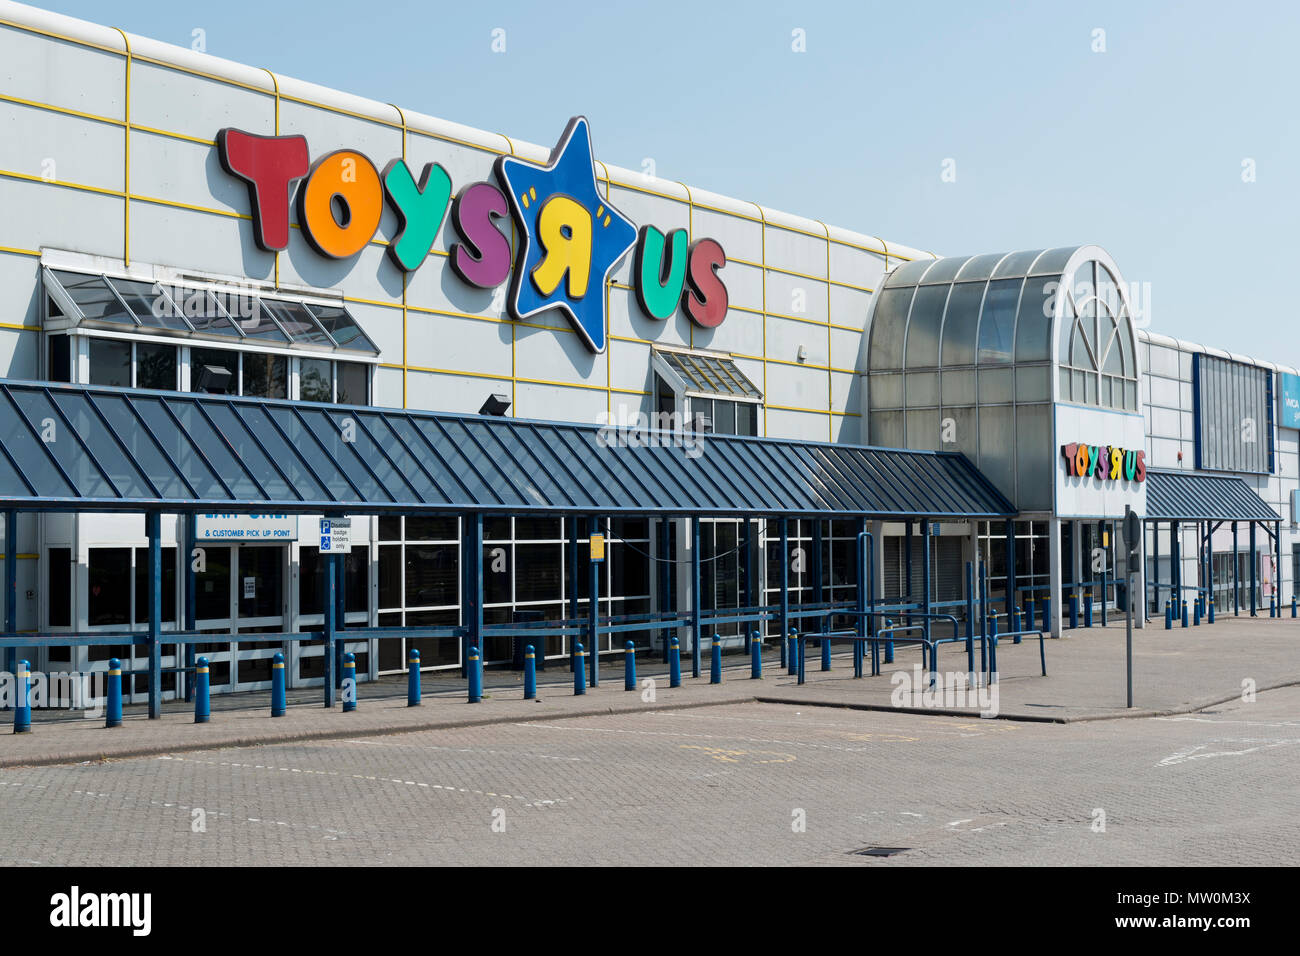 An empty unit at Central Retail Park off Great Ancoats Street in Manchester which has been vacated by the Toys R Us retailer. - Stock Image